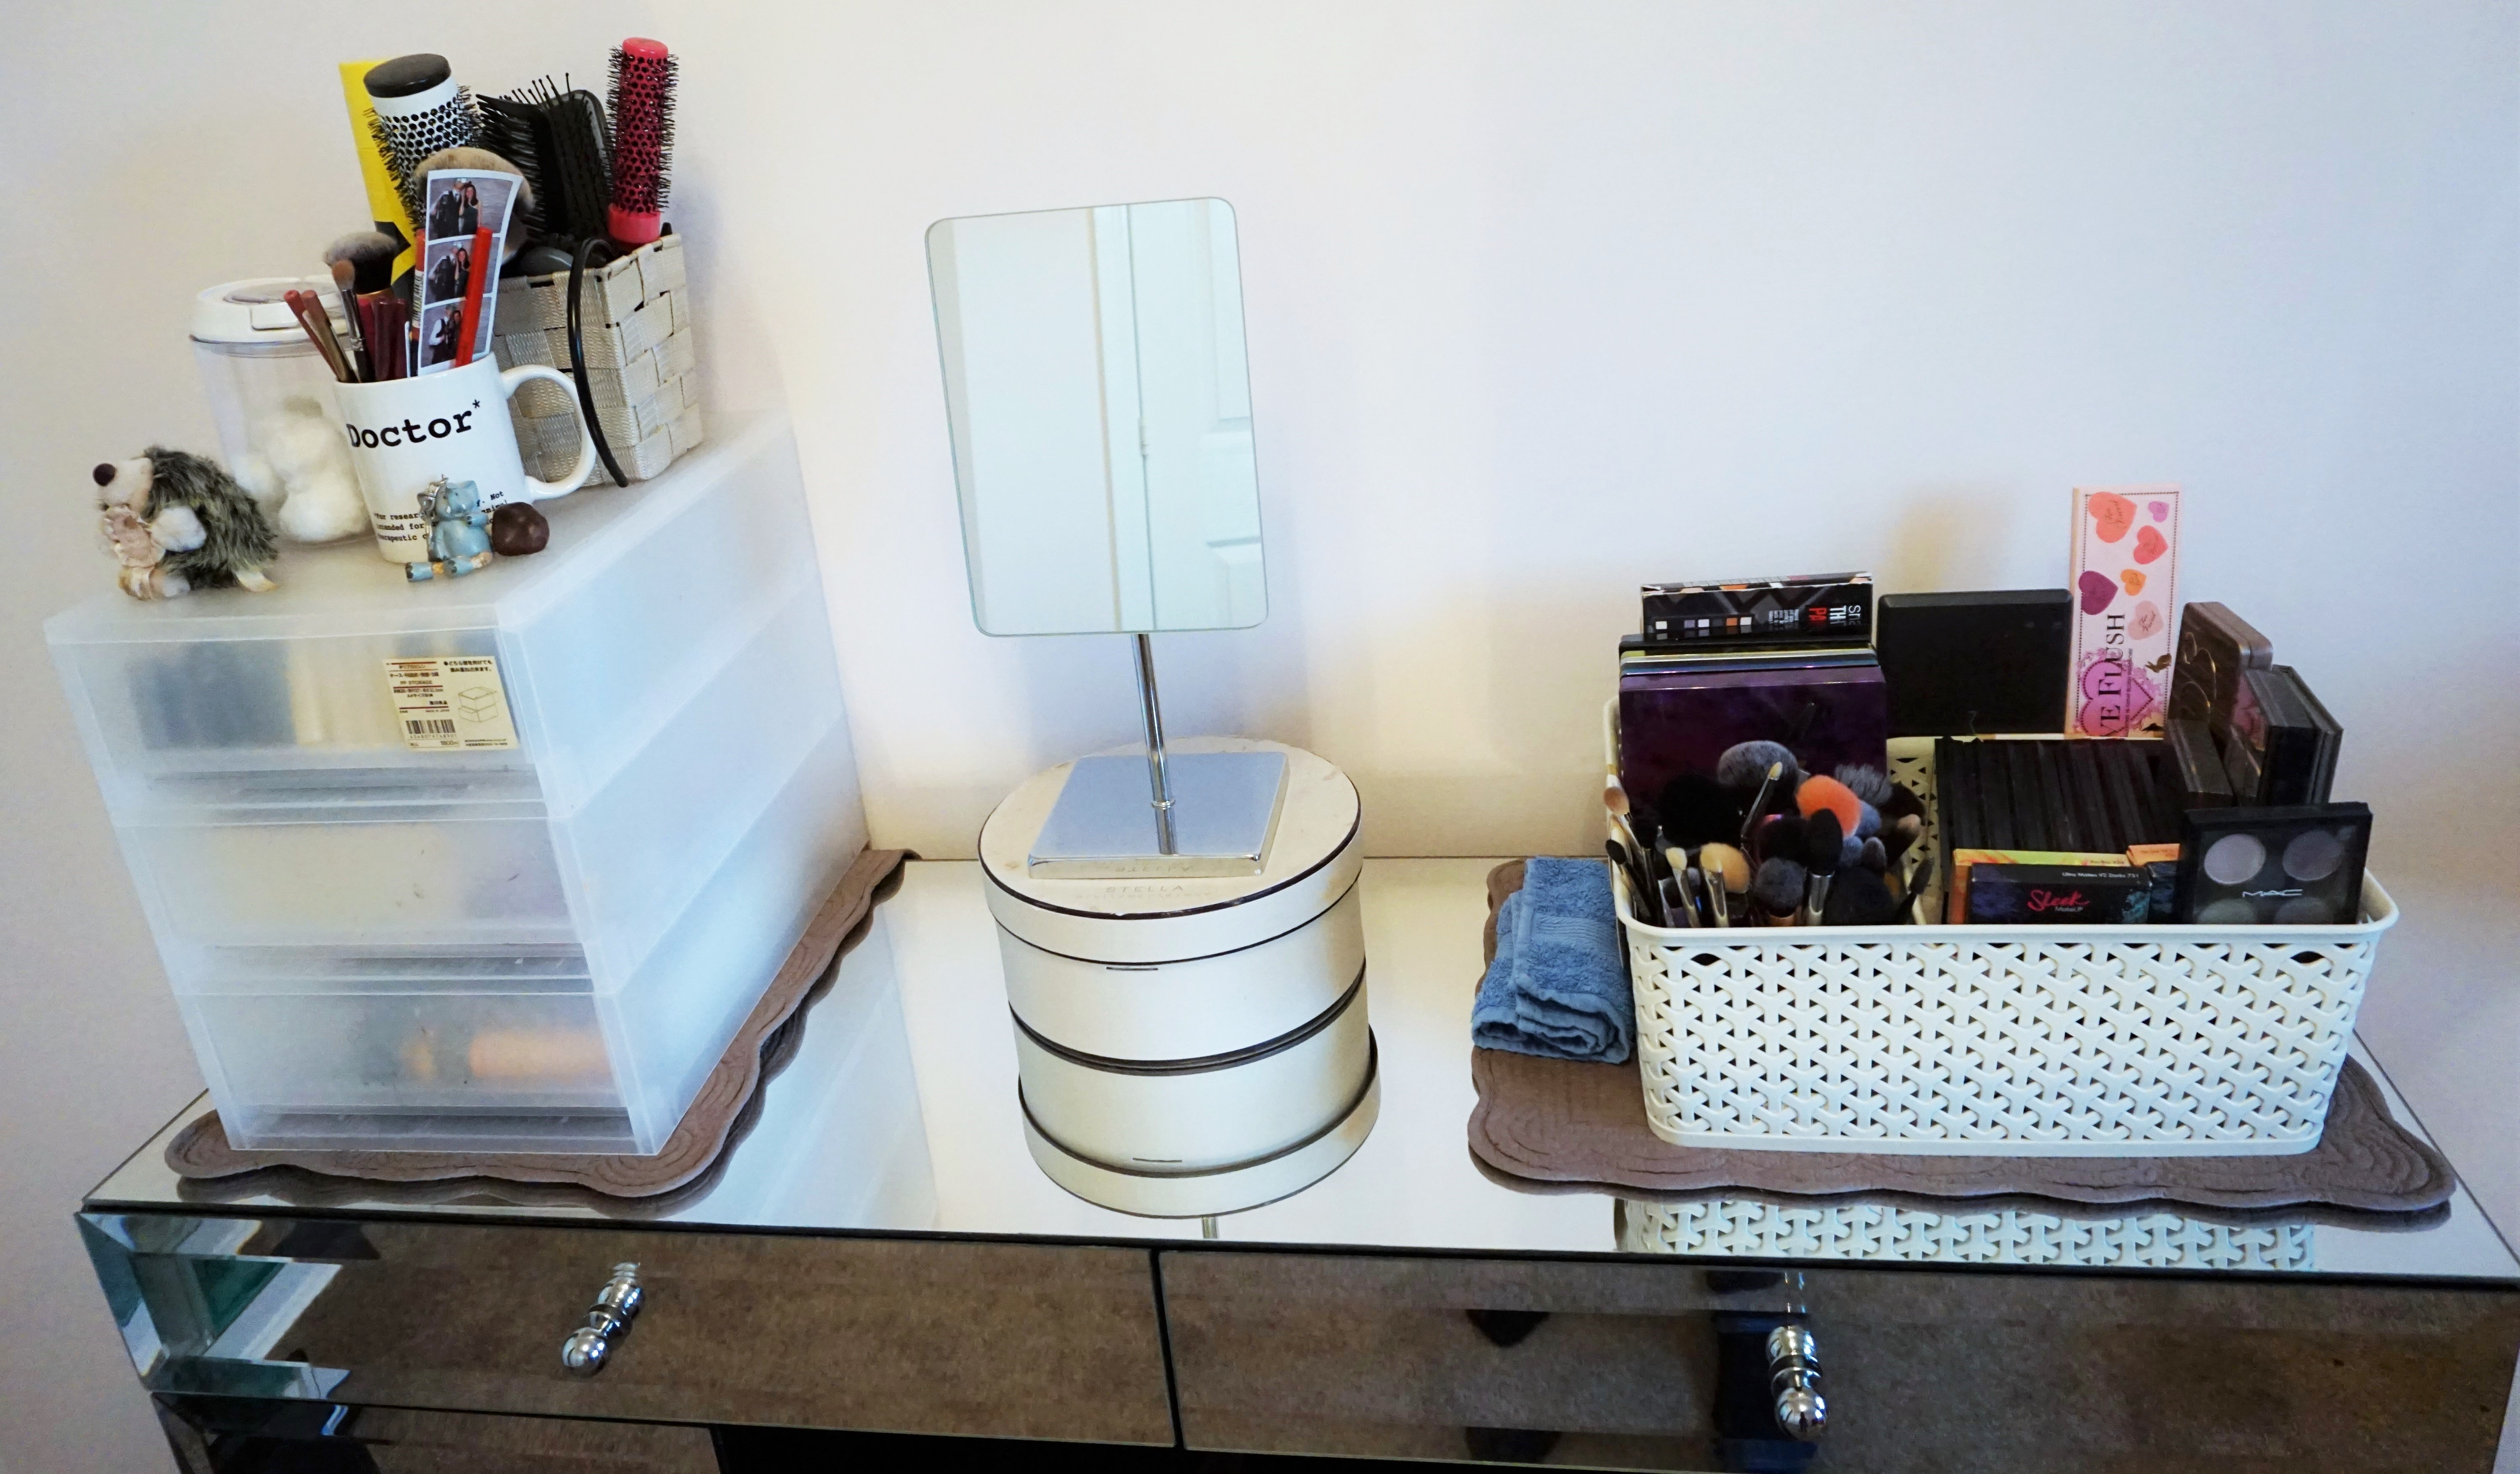 #2 Make Up Organisation And Storage: Eyeshadow Palettes, Brushes And Mirror